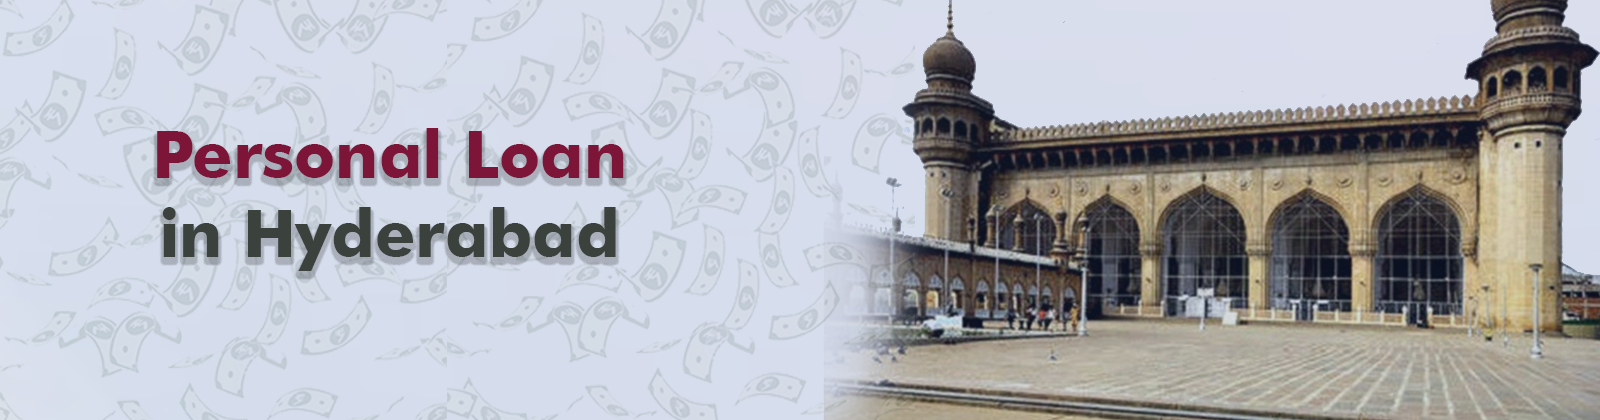 Personal Loan in Hyderabad